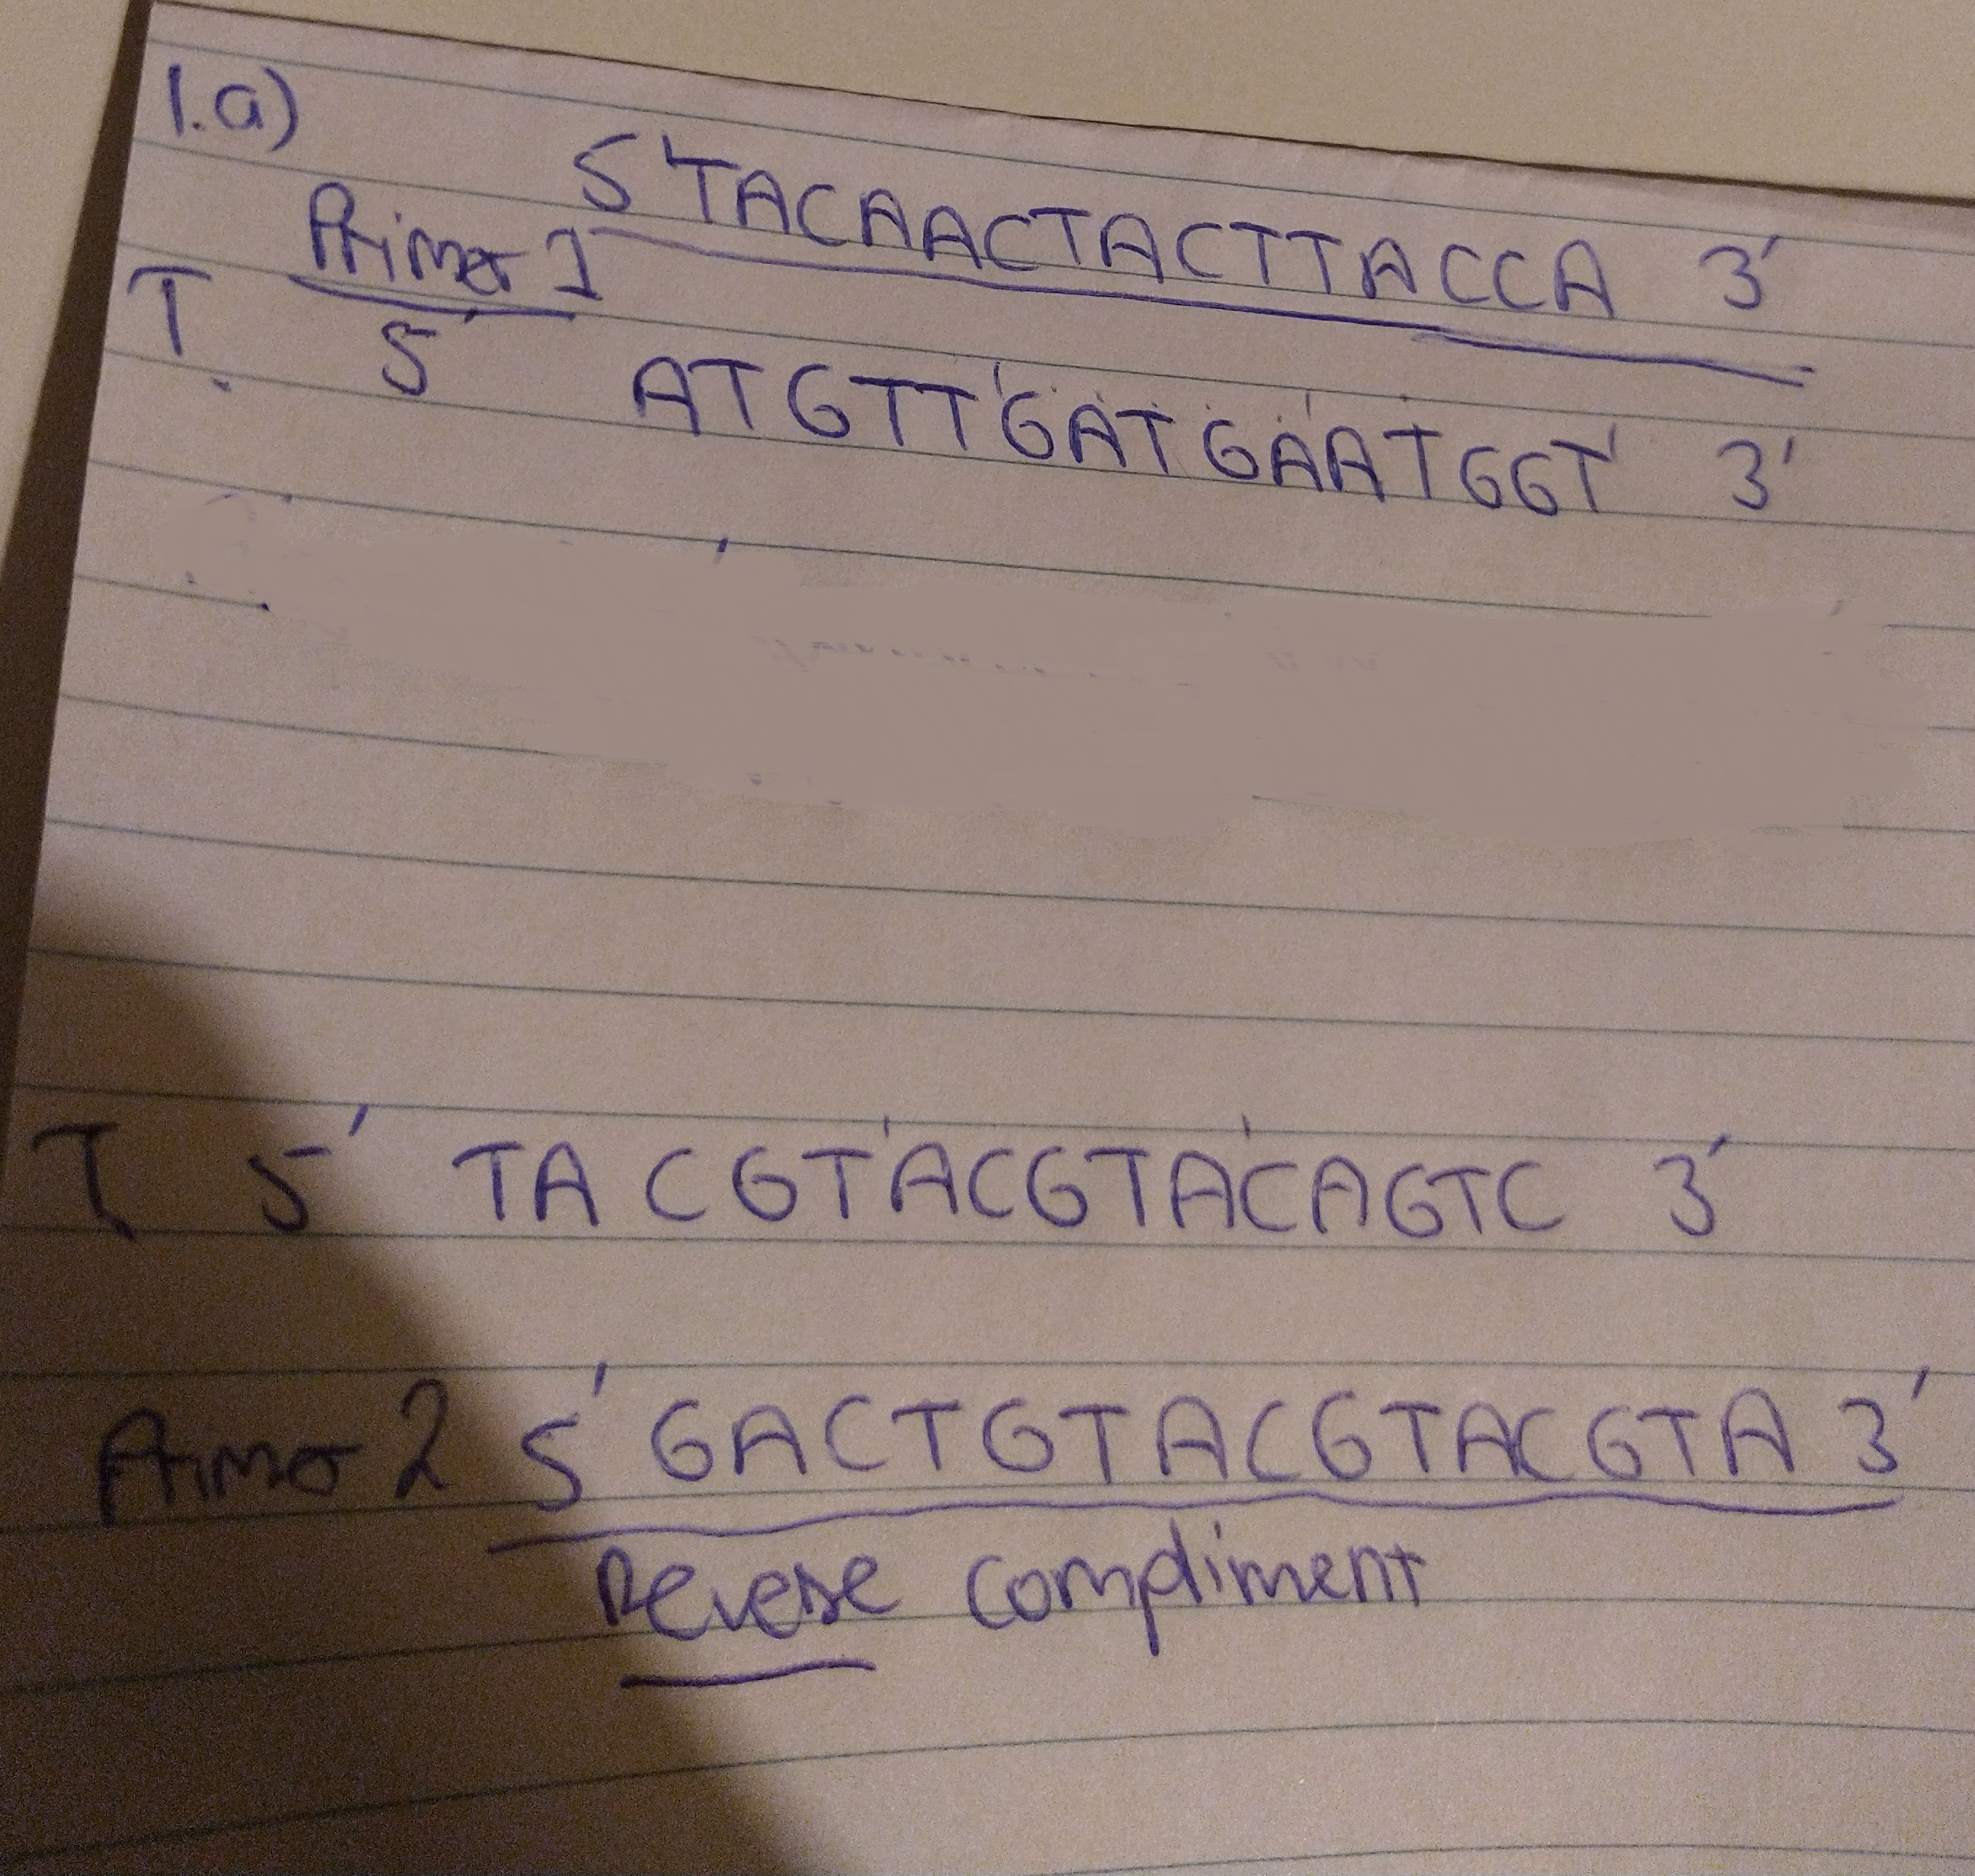 PCR, Replication And Transcription, And Lac Operon Questions